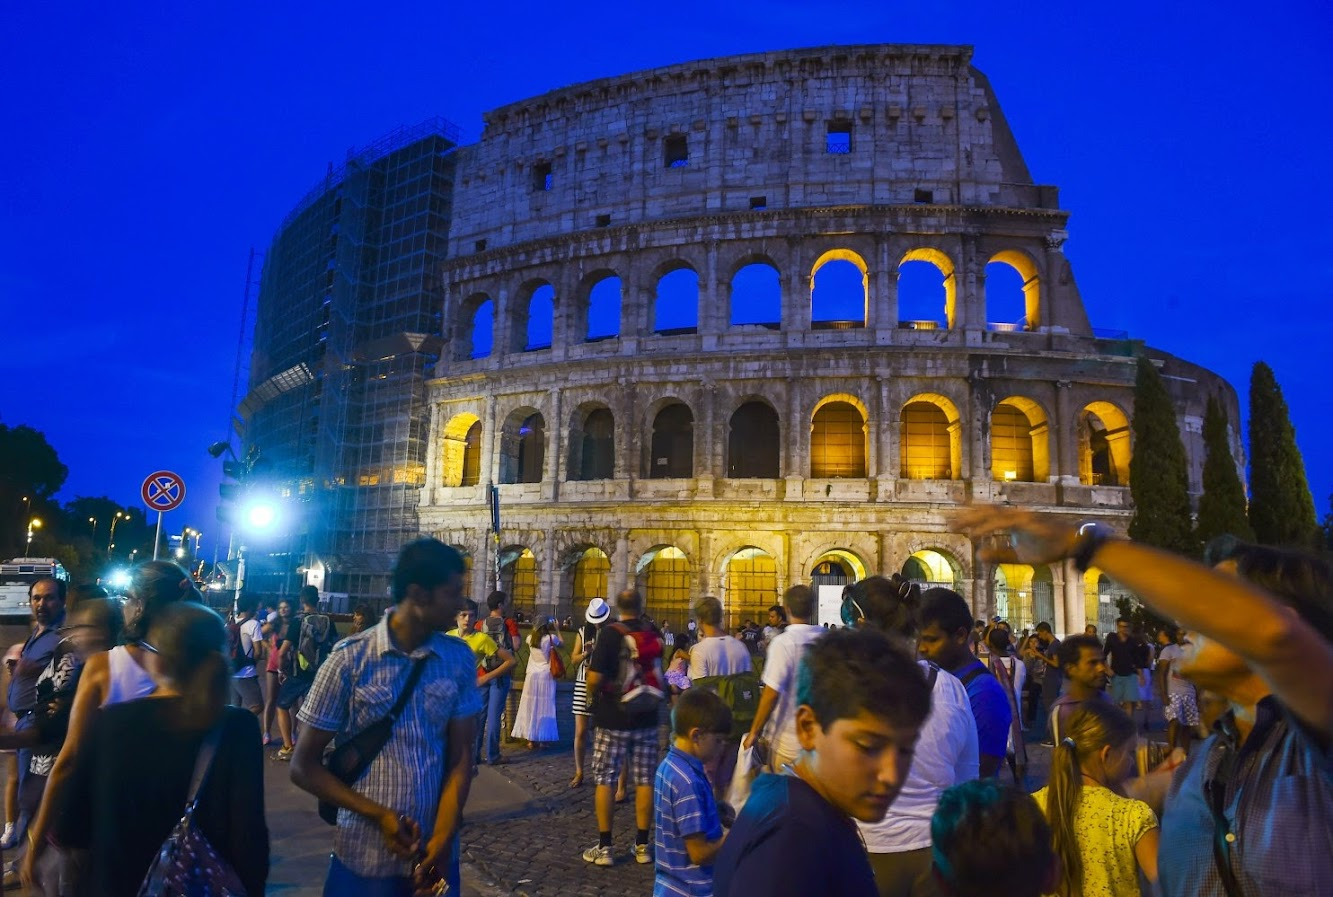 Italy: Fears that corporate cash will lead to Disneyfication of Italy's cultural heritage?